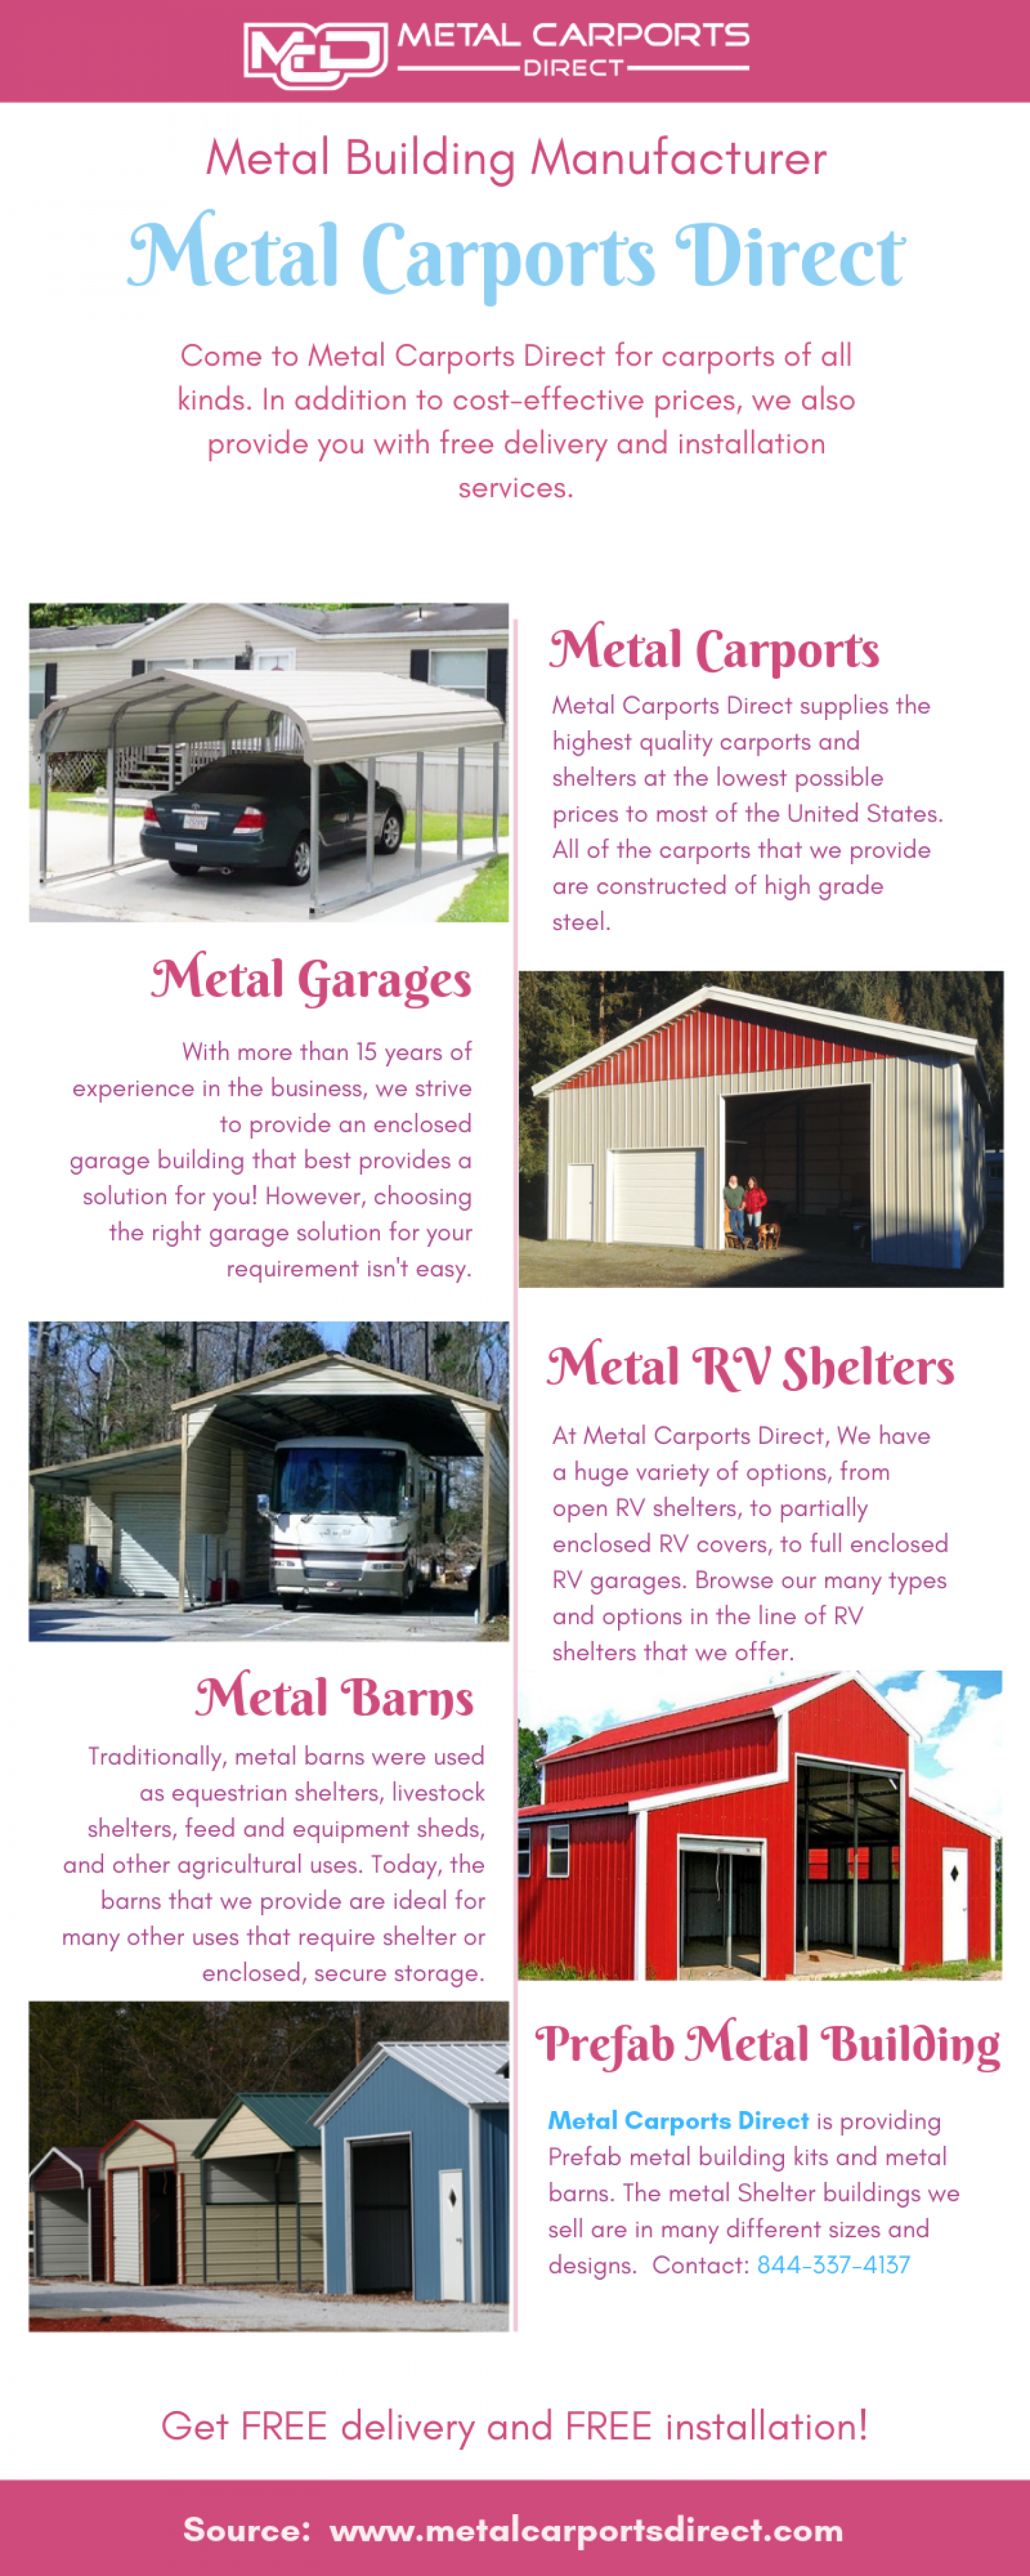 Metal Building Manufacturers | Metal Carports Direct Infographic